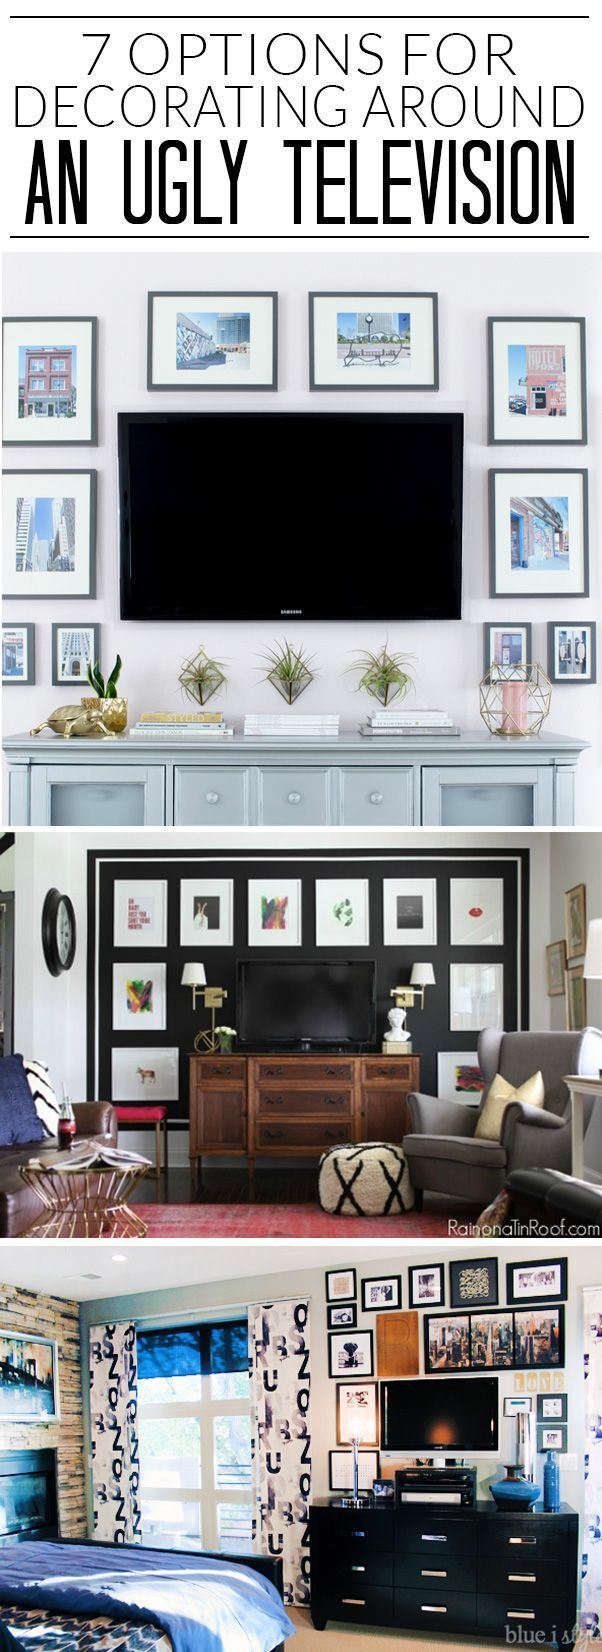 7 great ideas to decorate around a large flat screen tv.